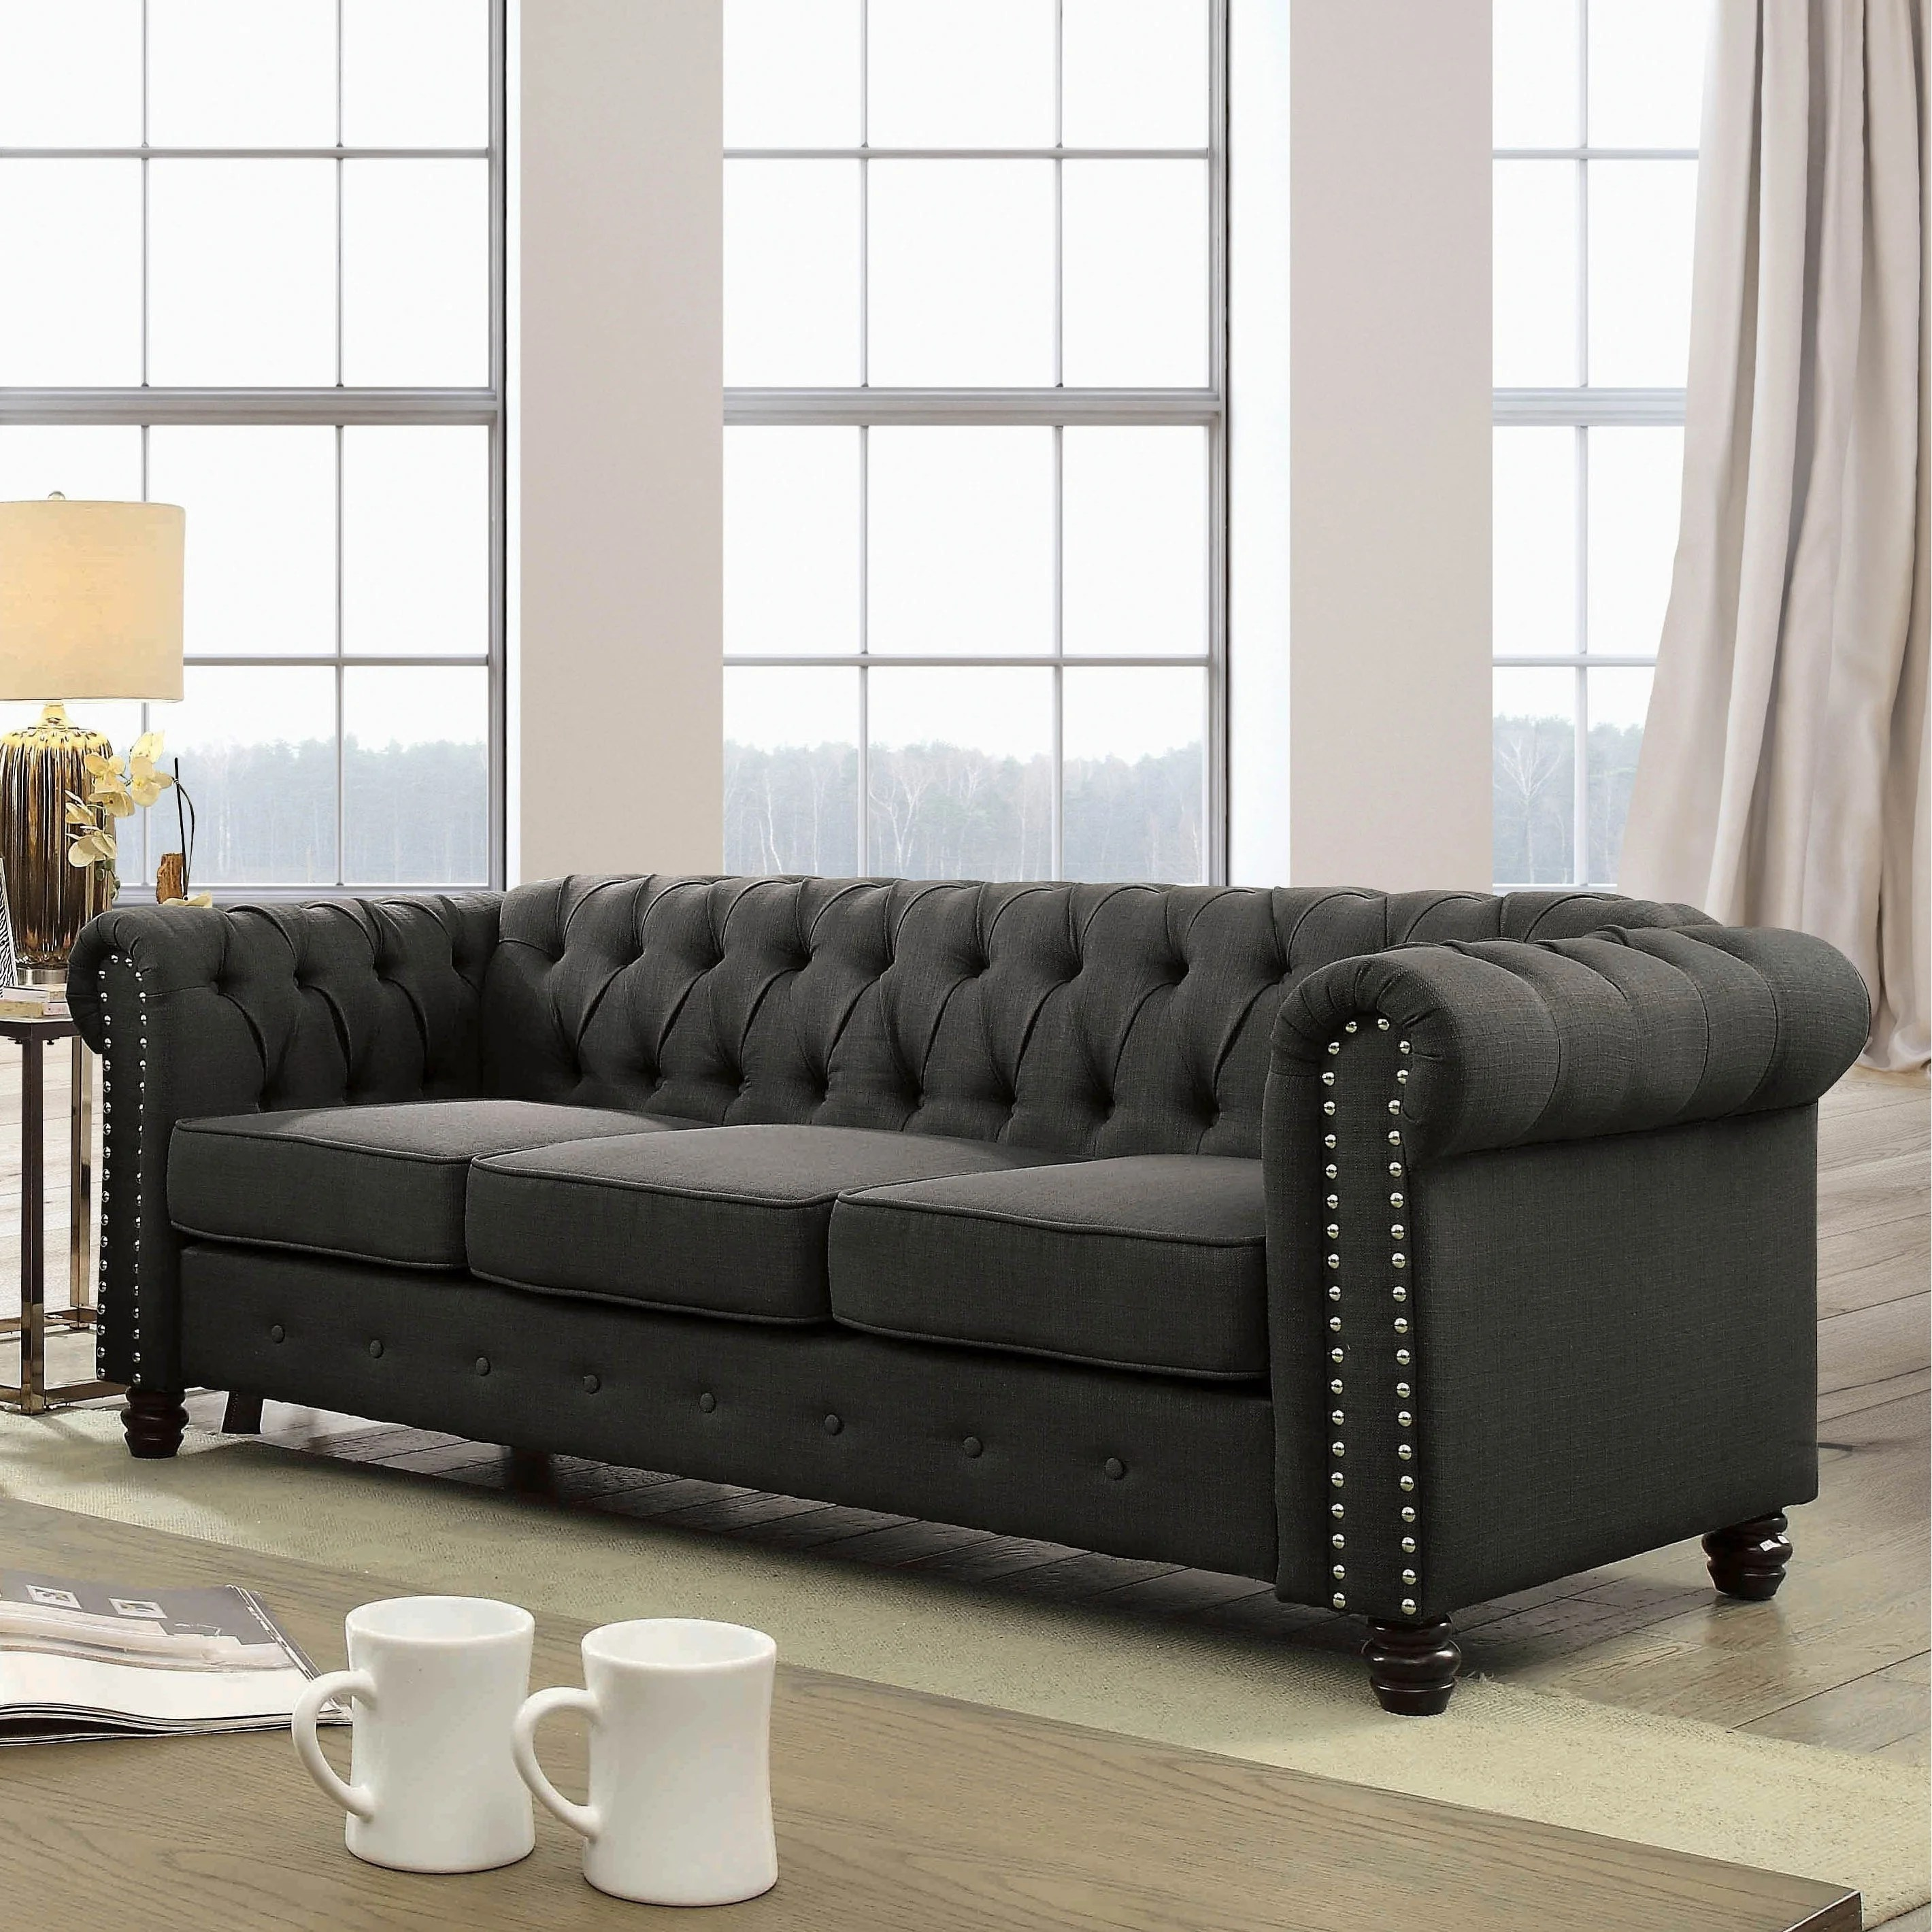 Chesterfield Sofa Japan Martine Traditional Tufted Chesterfield Sofa By Foa